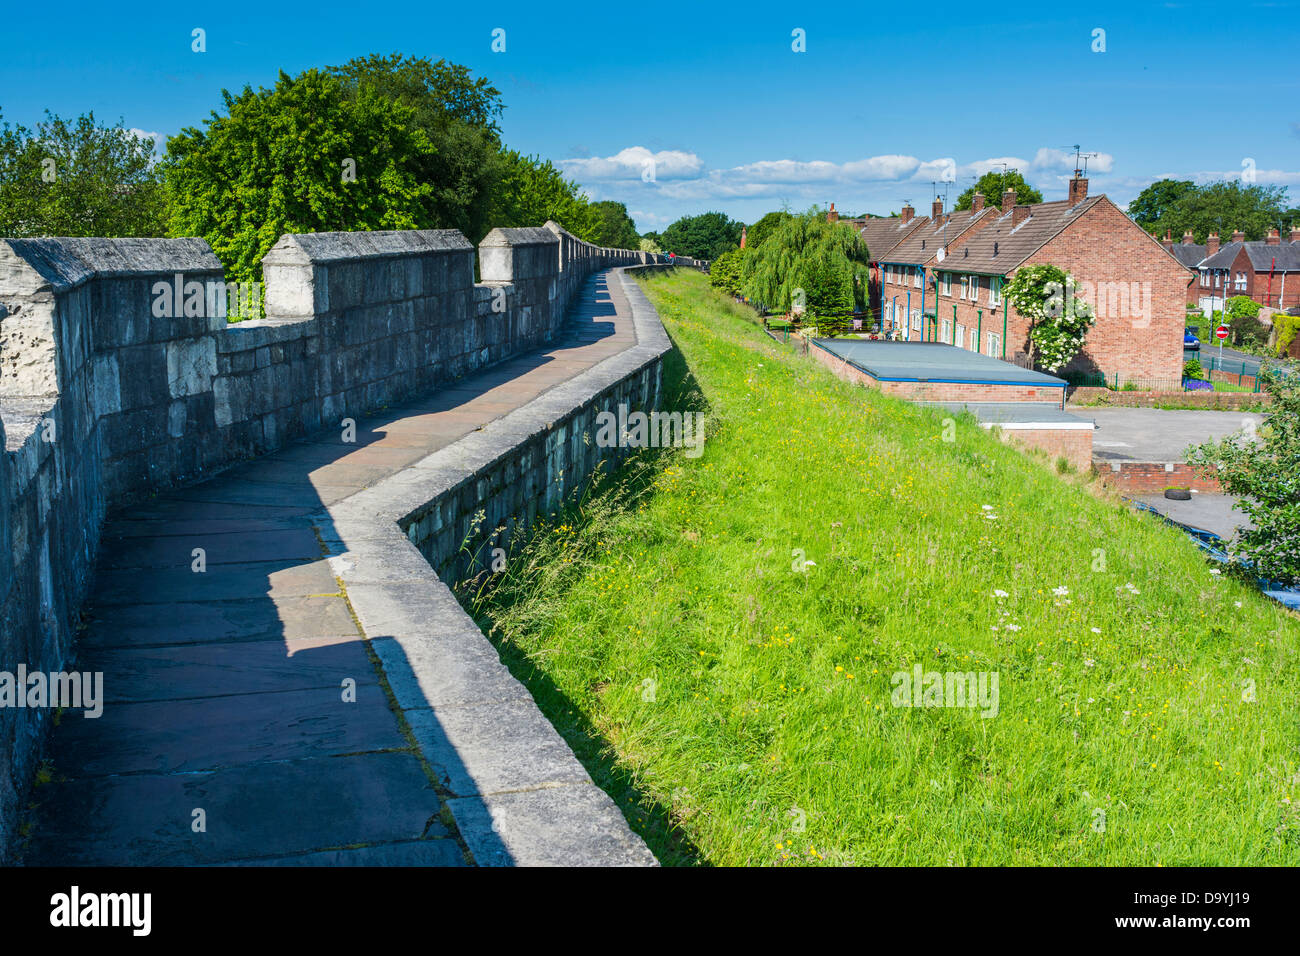 The City Wall with local authority housing, York, England, June - Stock Image